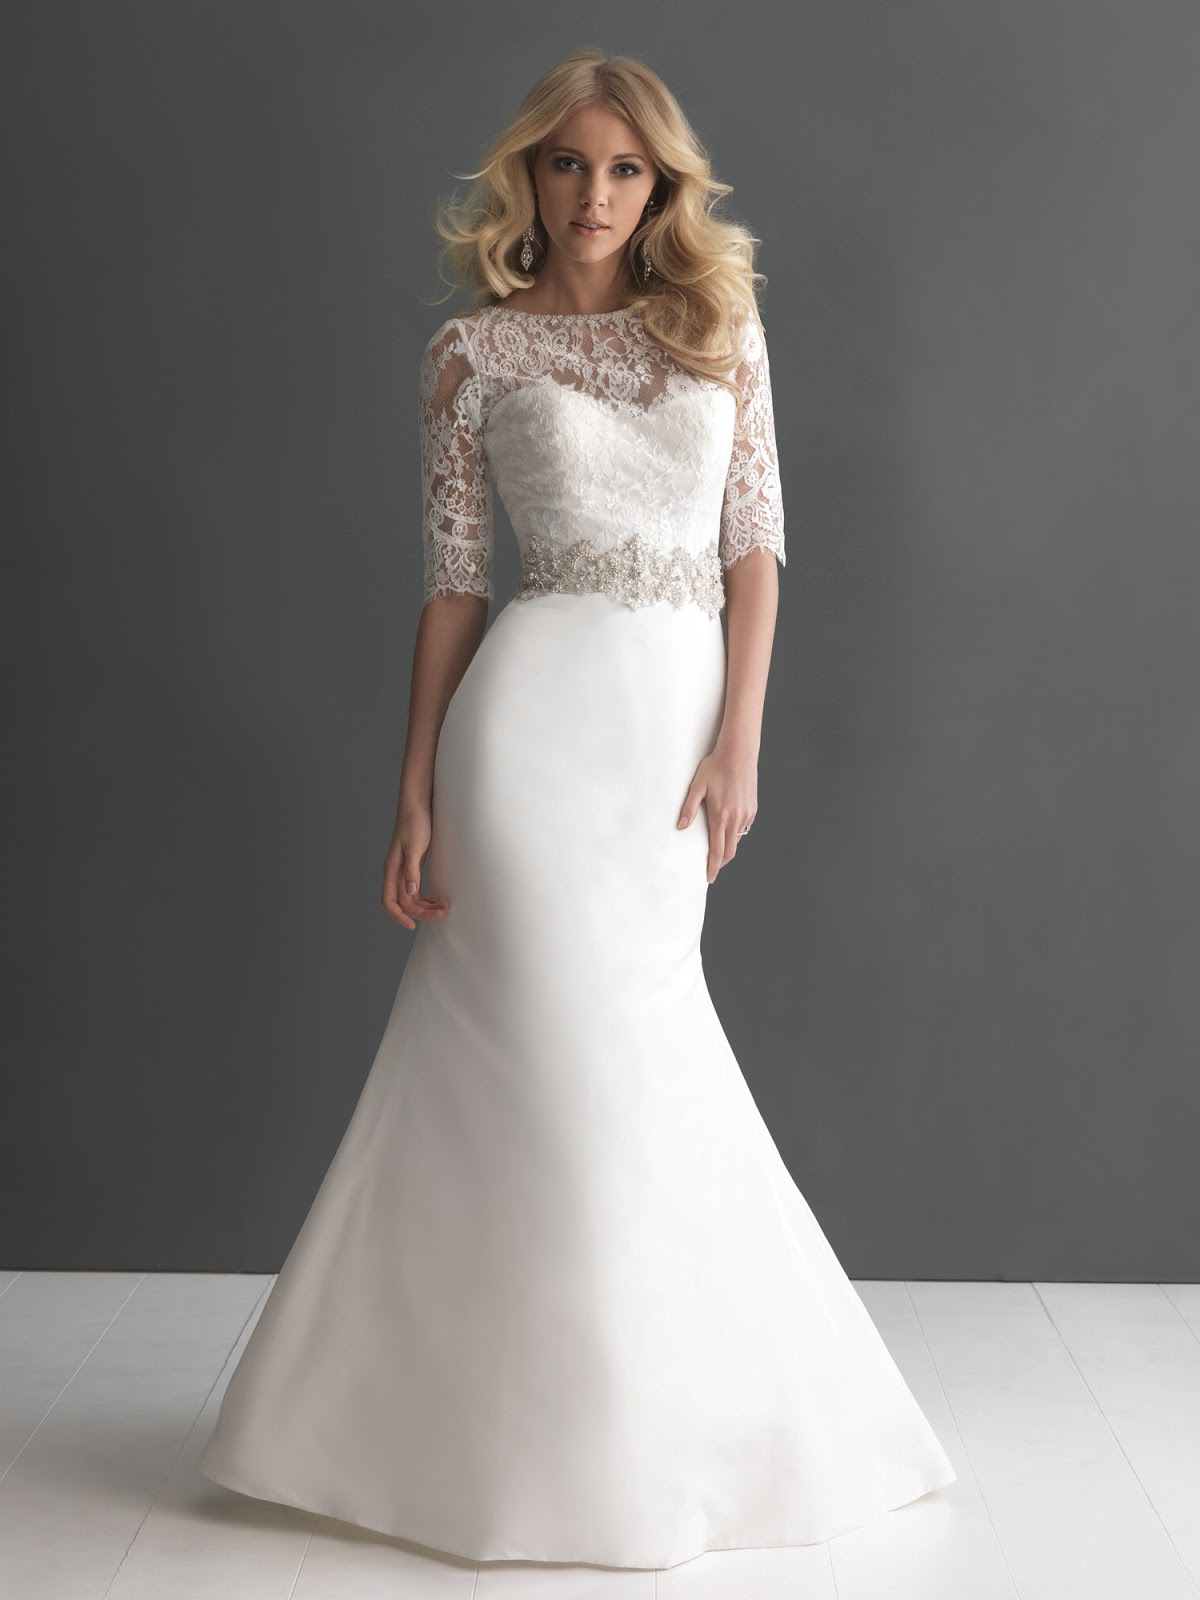 DressyBridal Allure Wedding Dresses Fall 2013 Collection